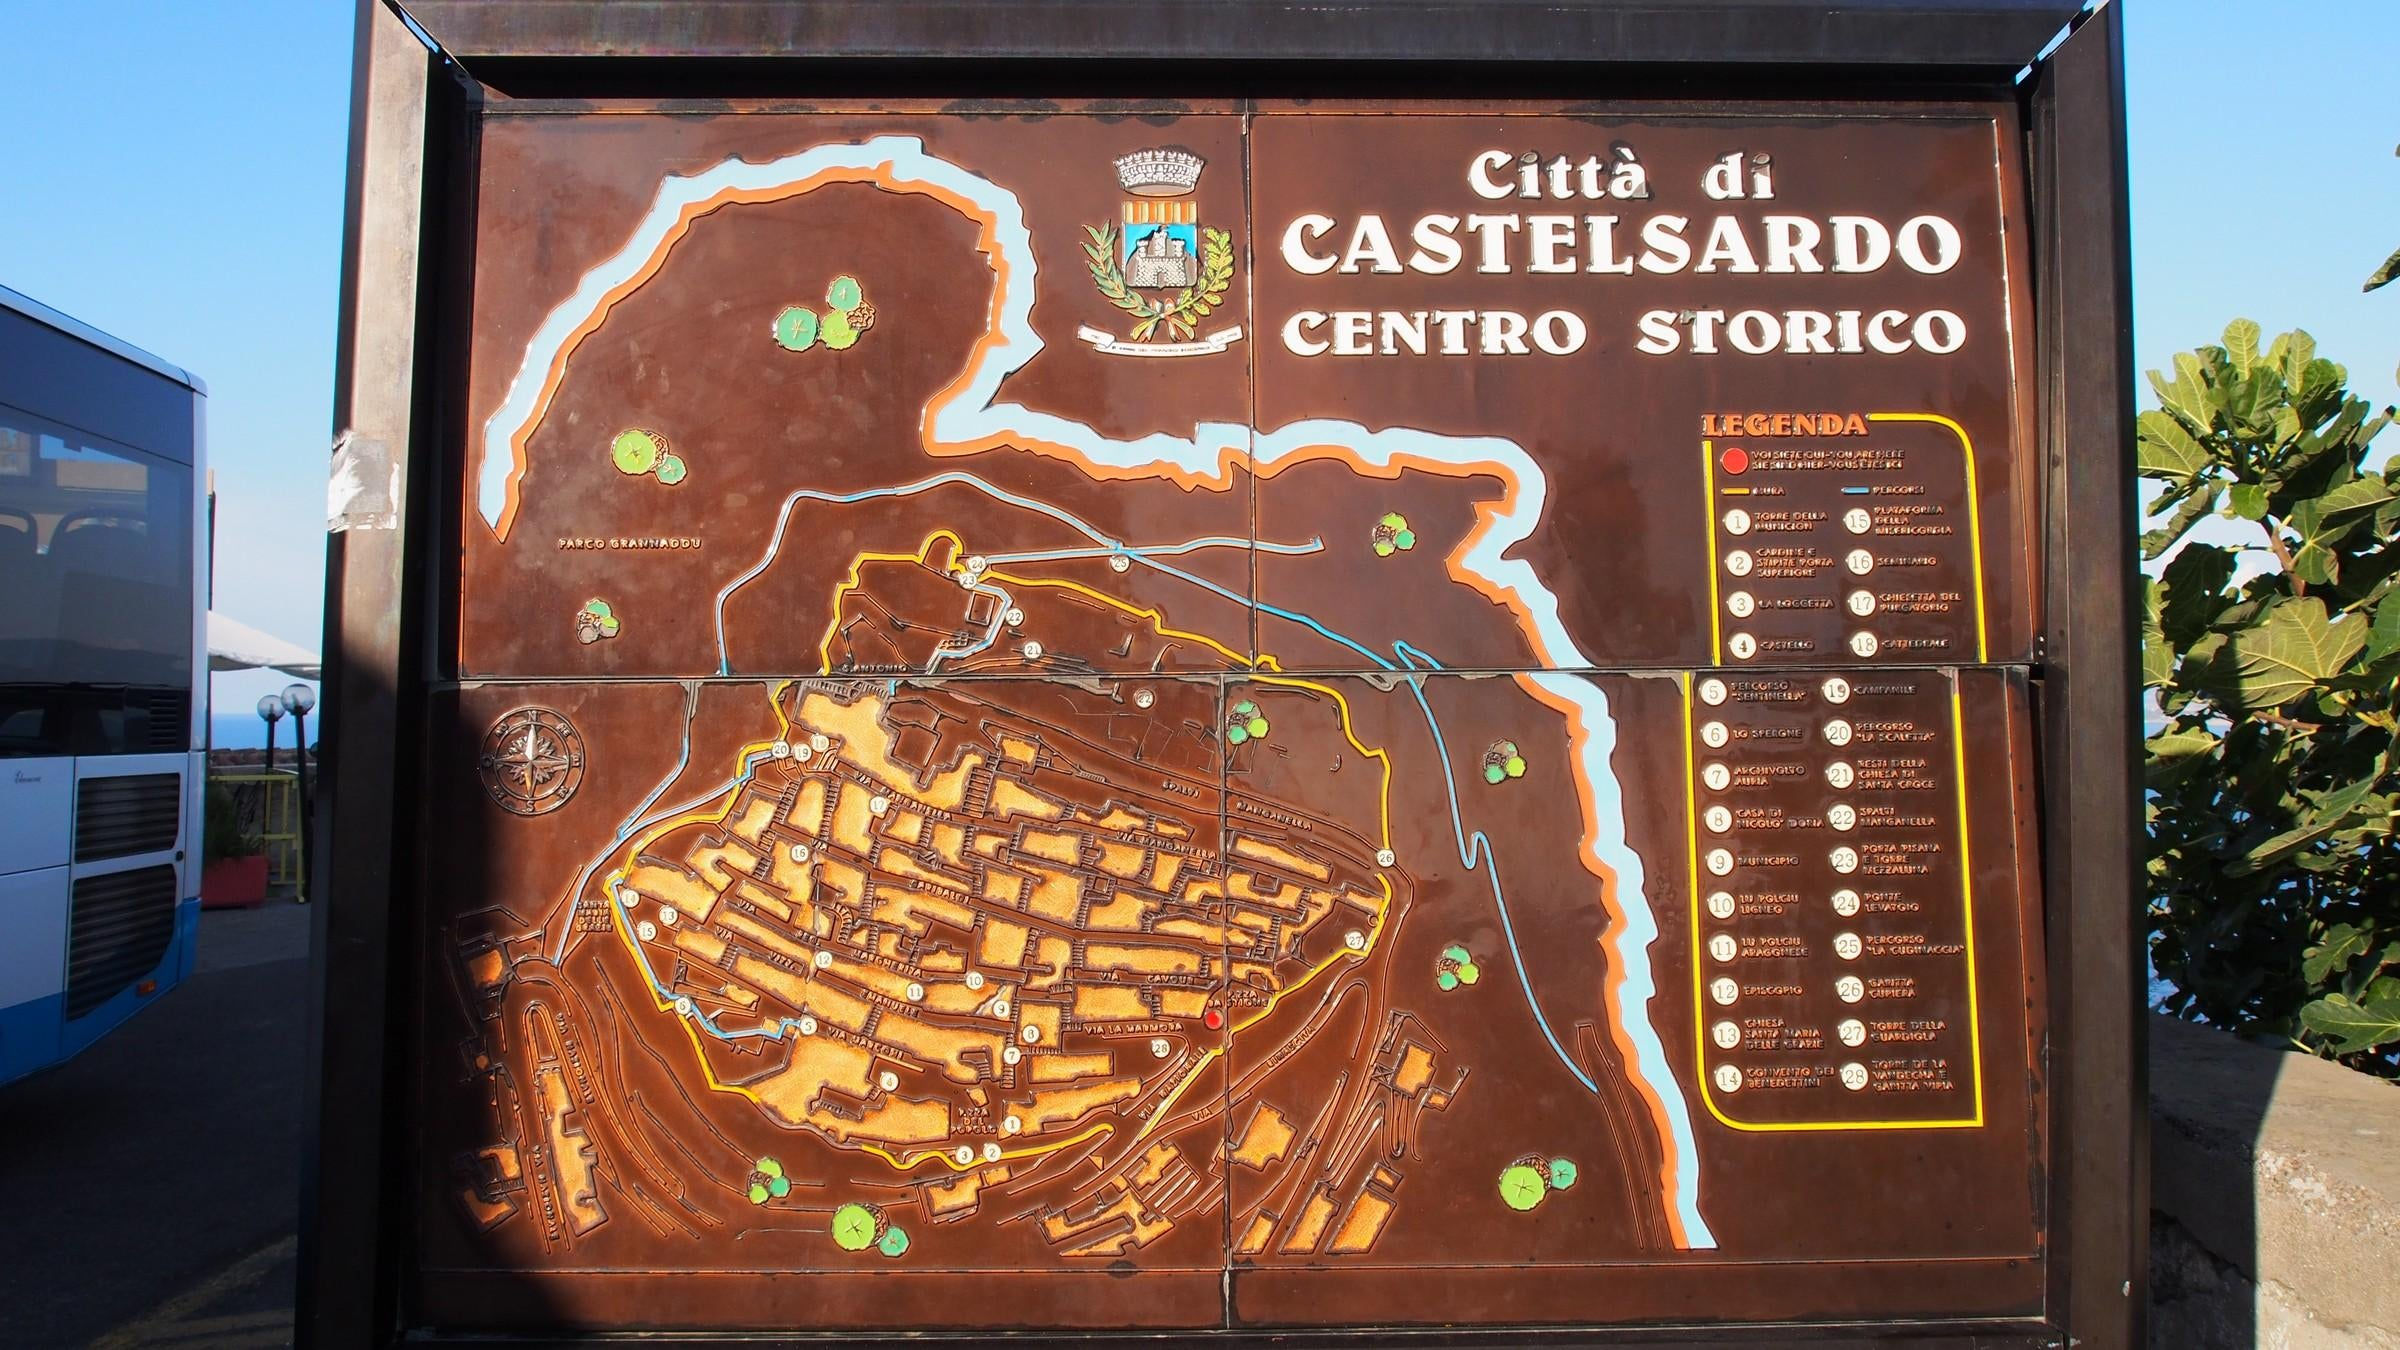 Dispositivo Movil en Casco Histórico Castelsardo